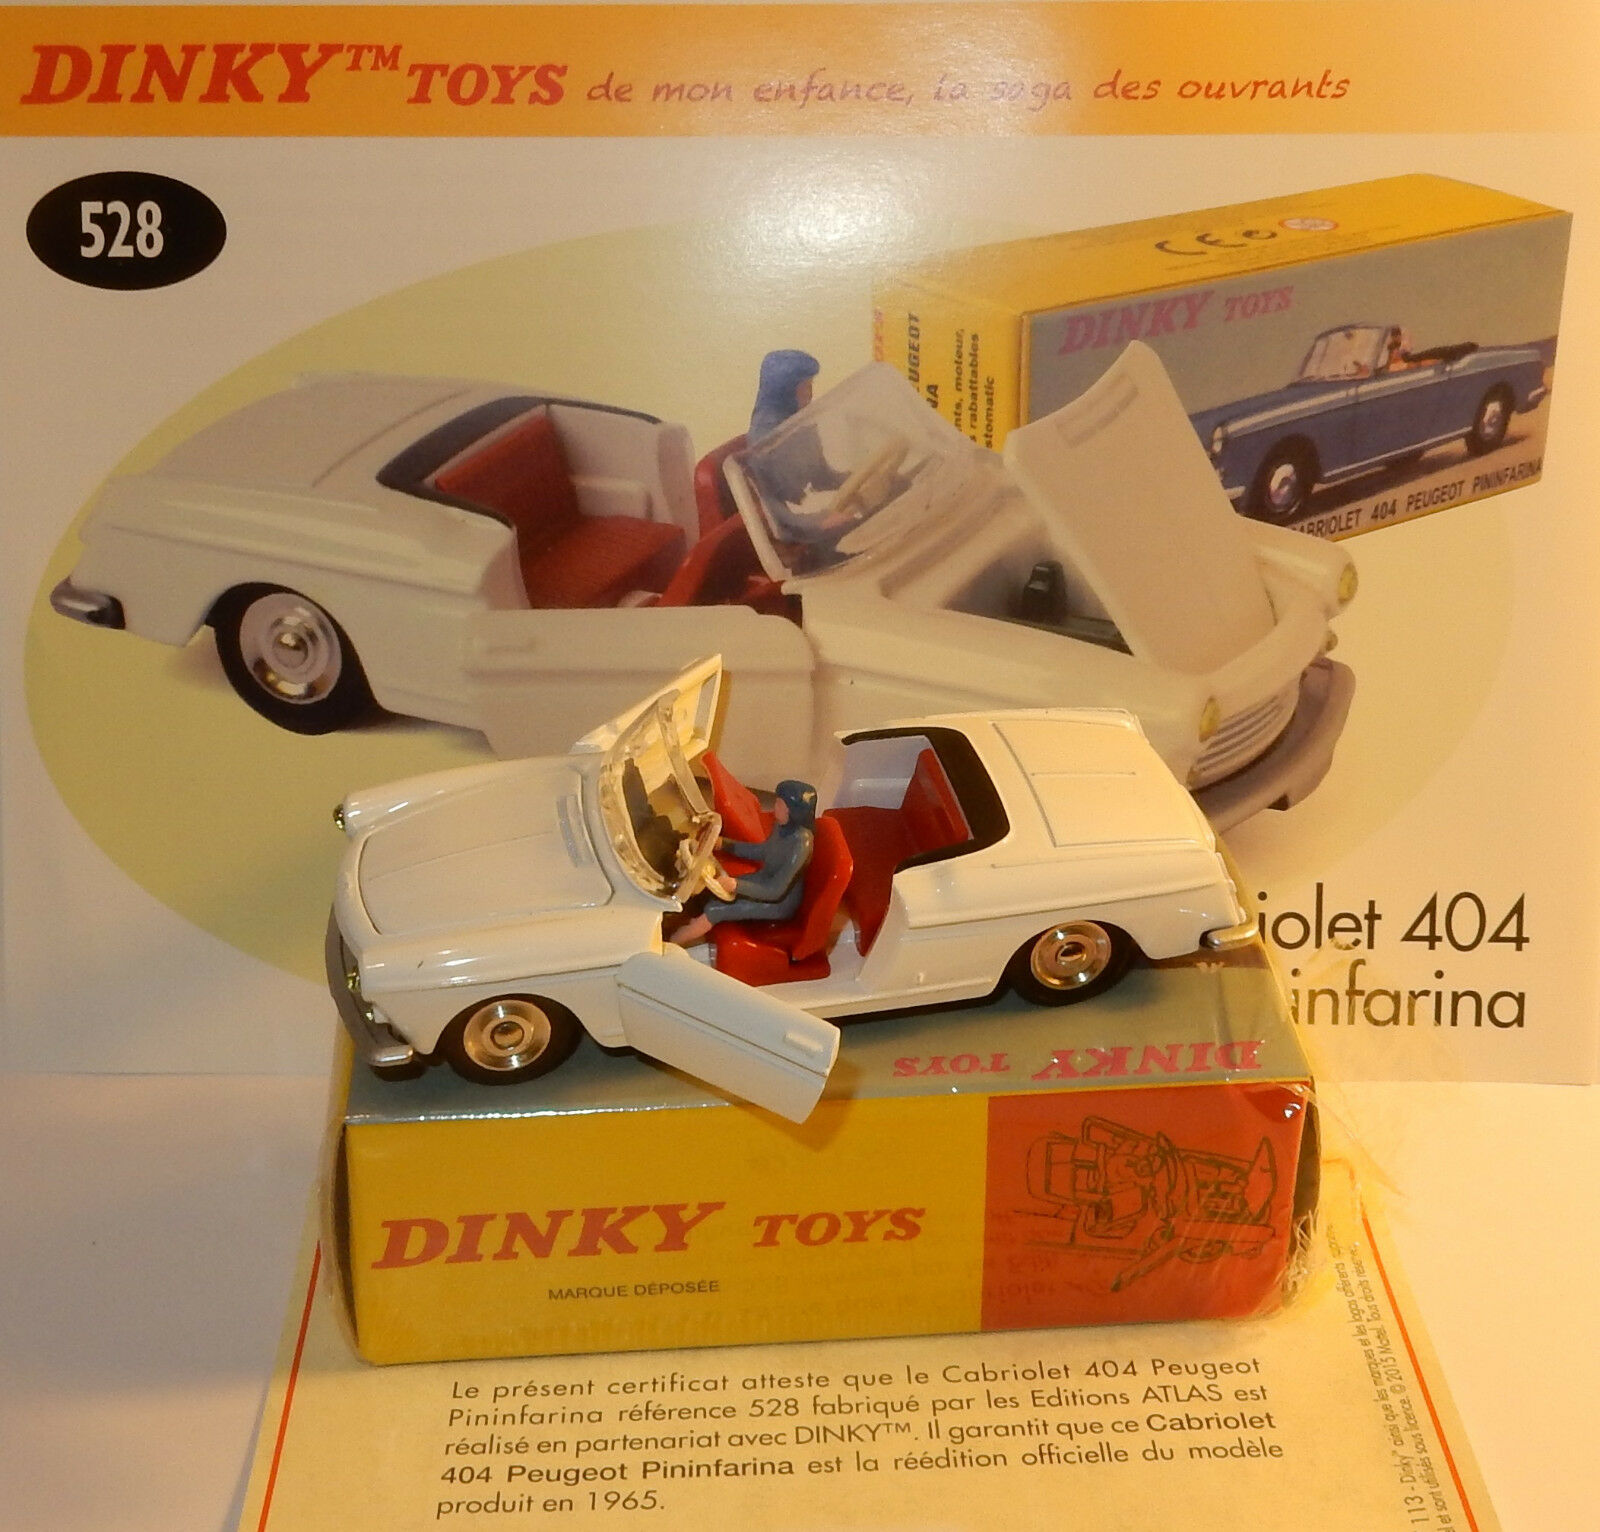 Dinky atlas peugeot 404 cabriolet pininfarina white ref 528 in box